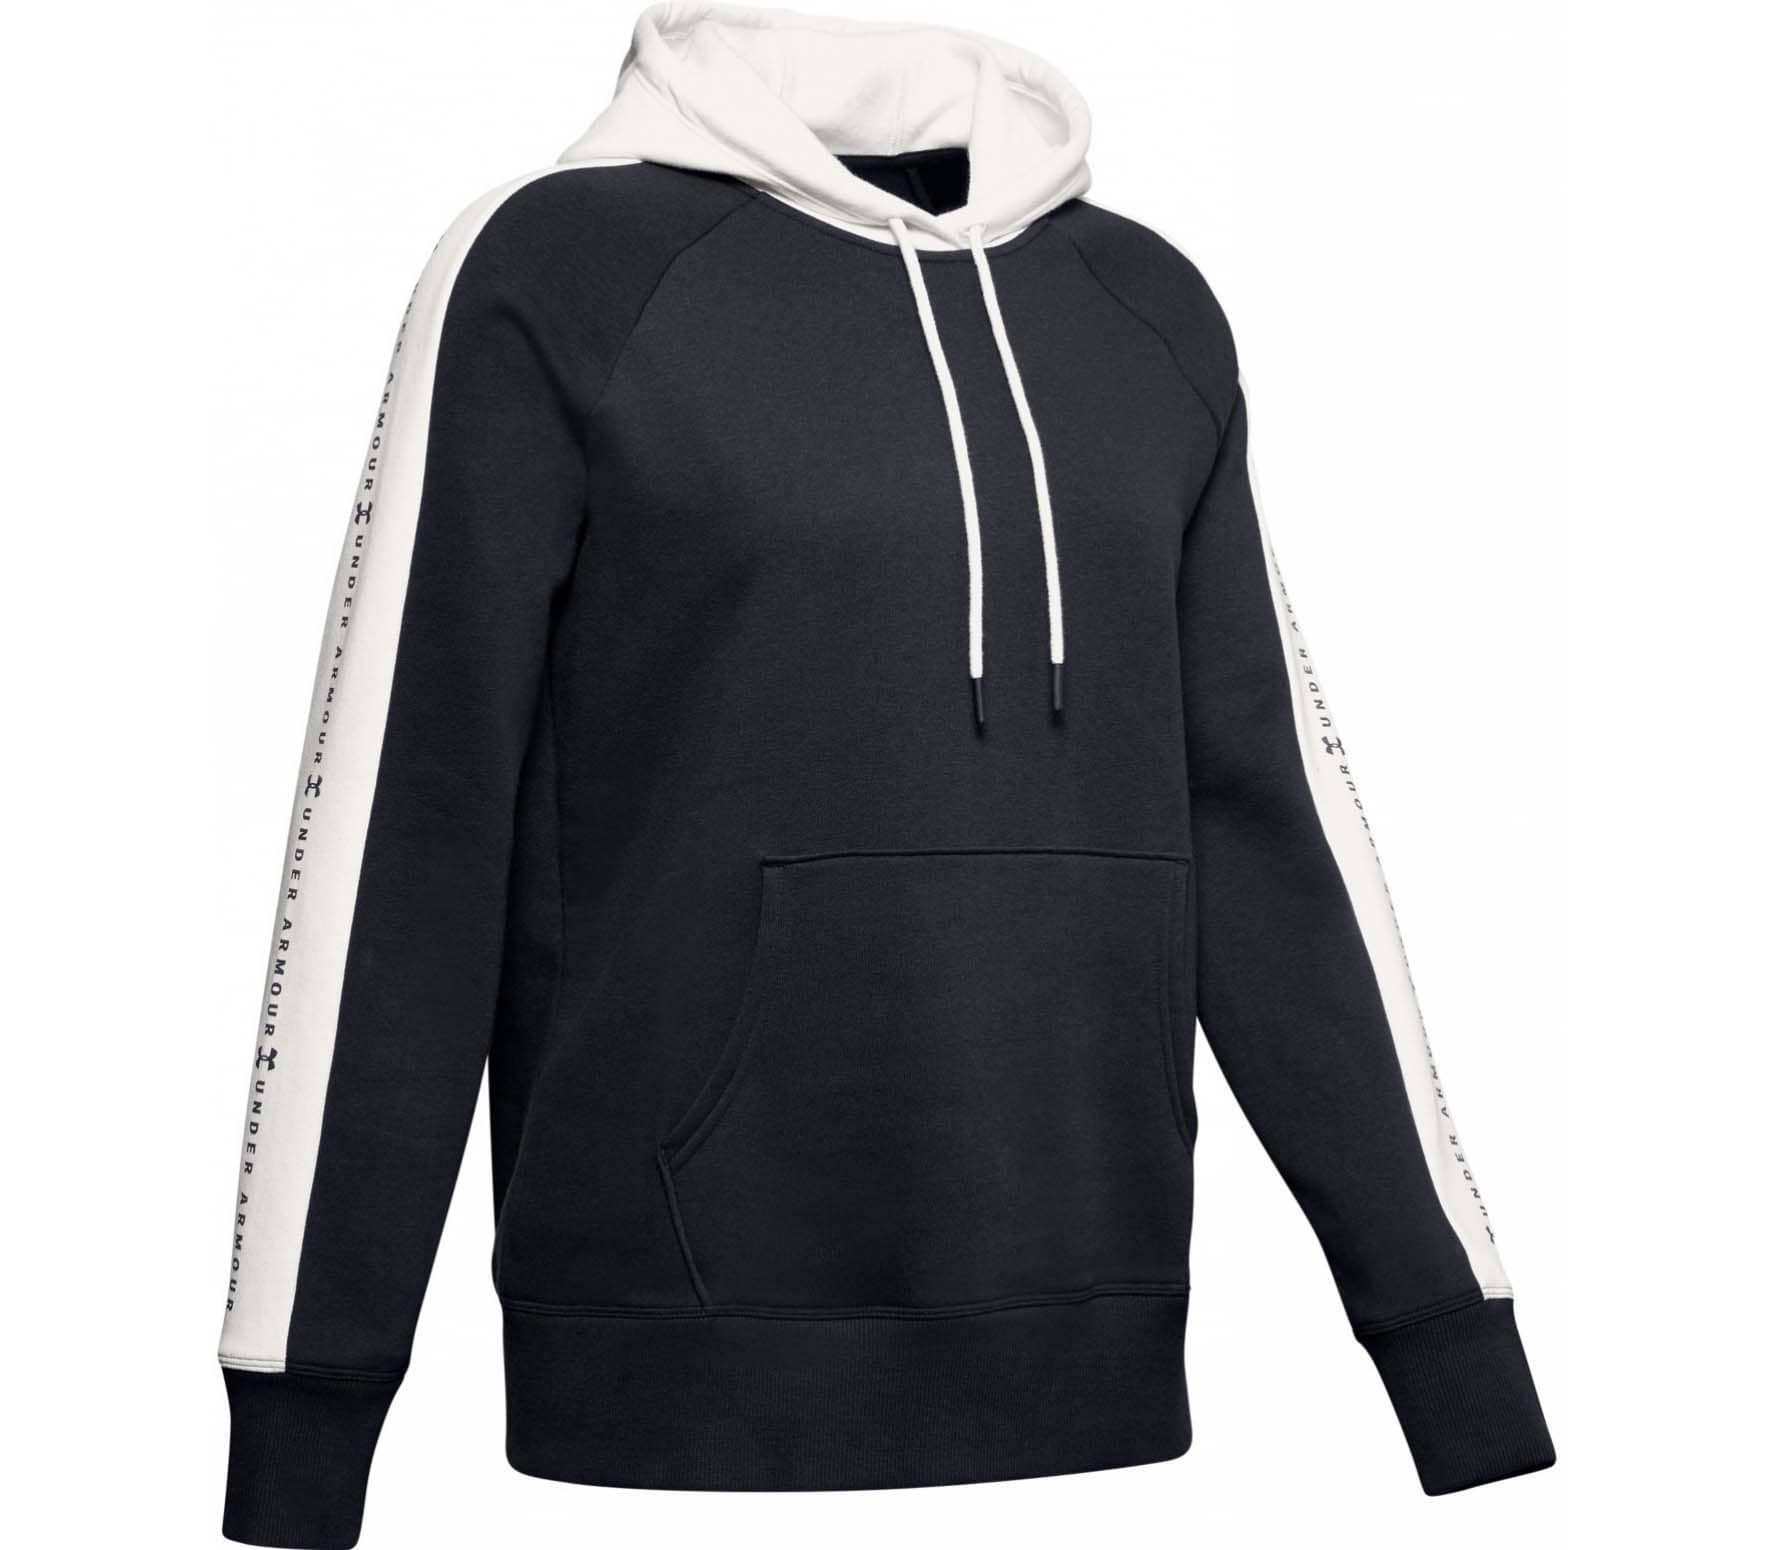 Under Armour Rival Fleece Novelty Dam Fleece-huvtröja M